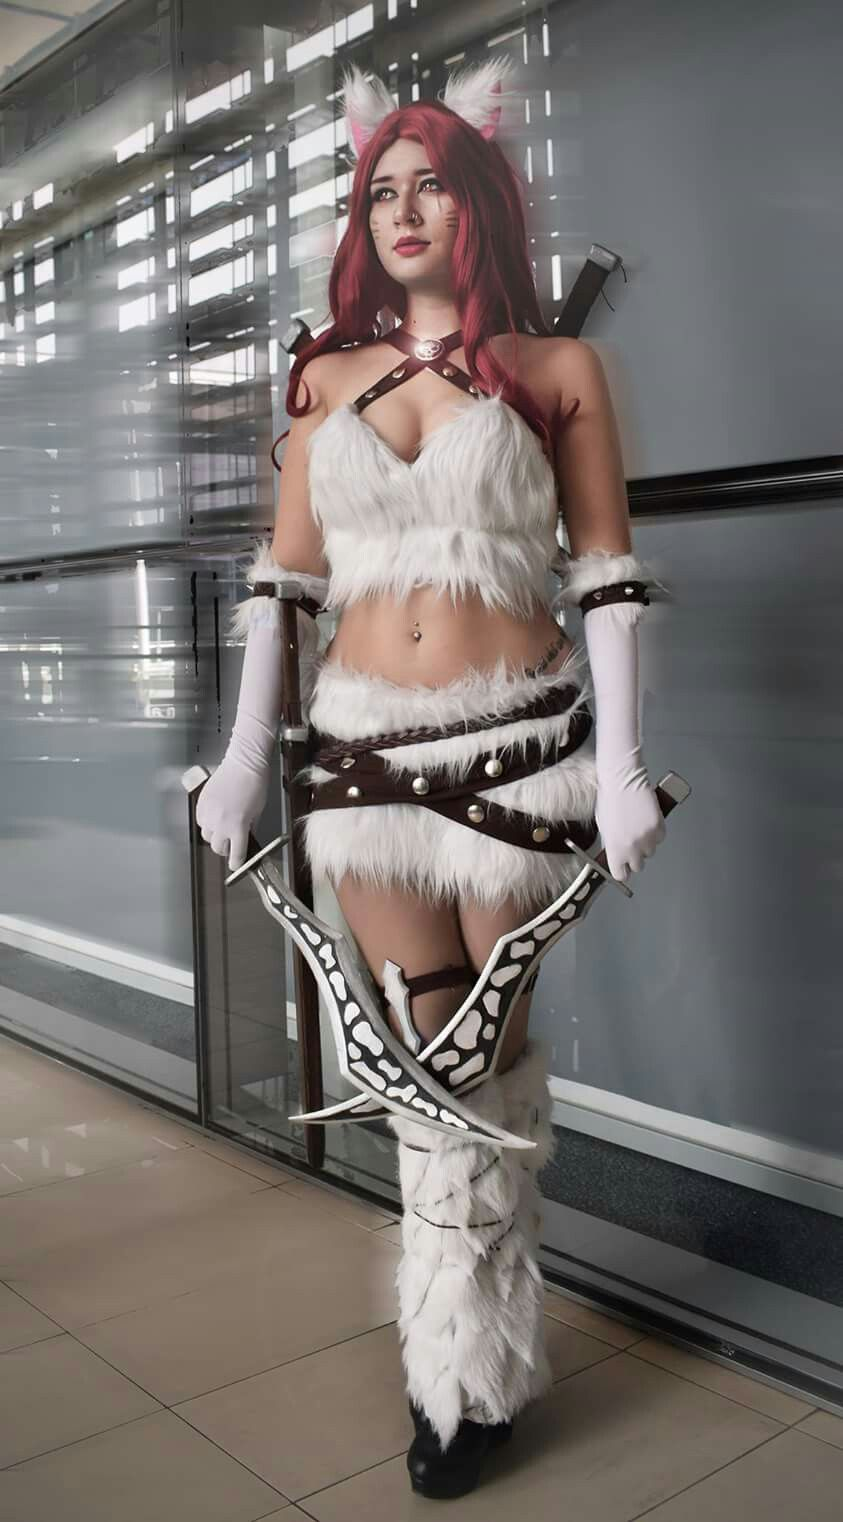 Kitty cat katarina lol